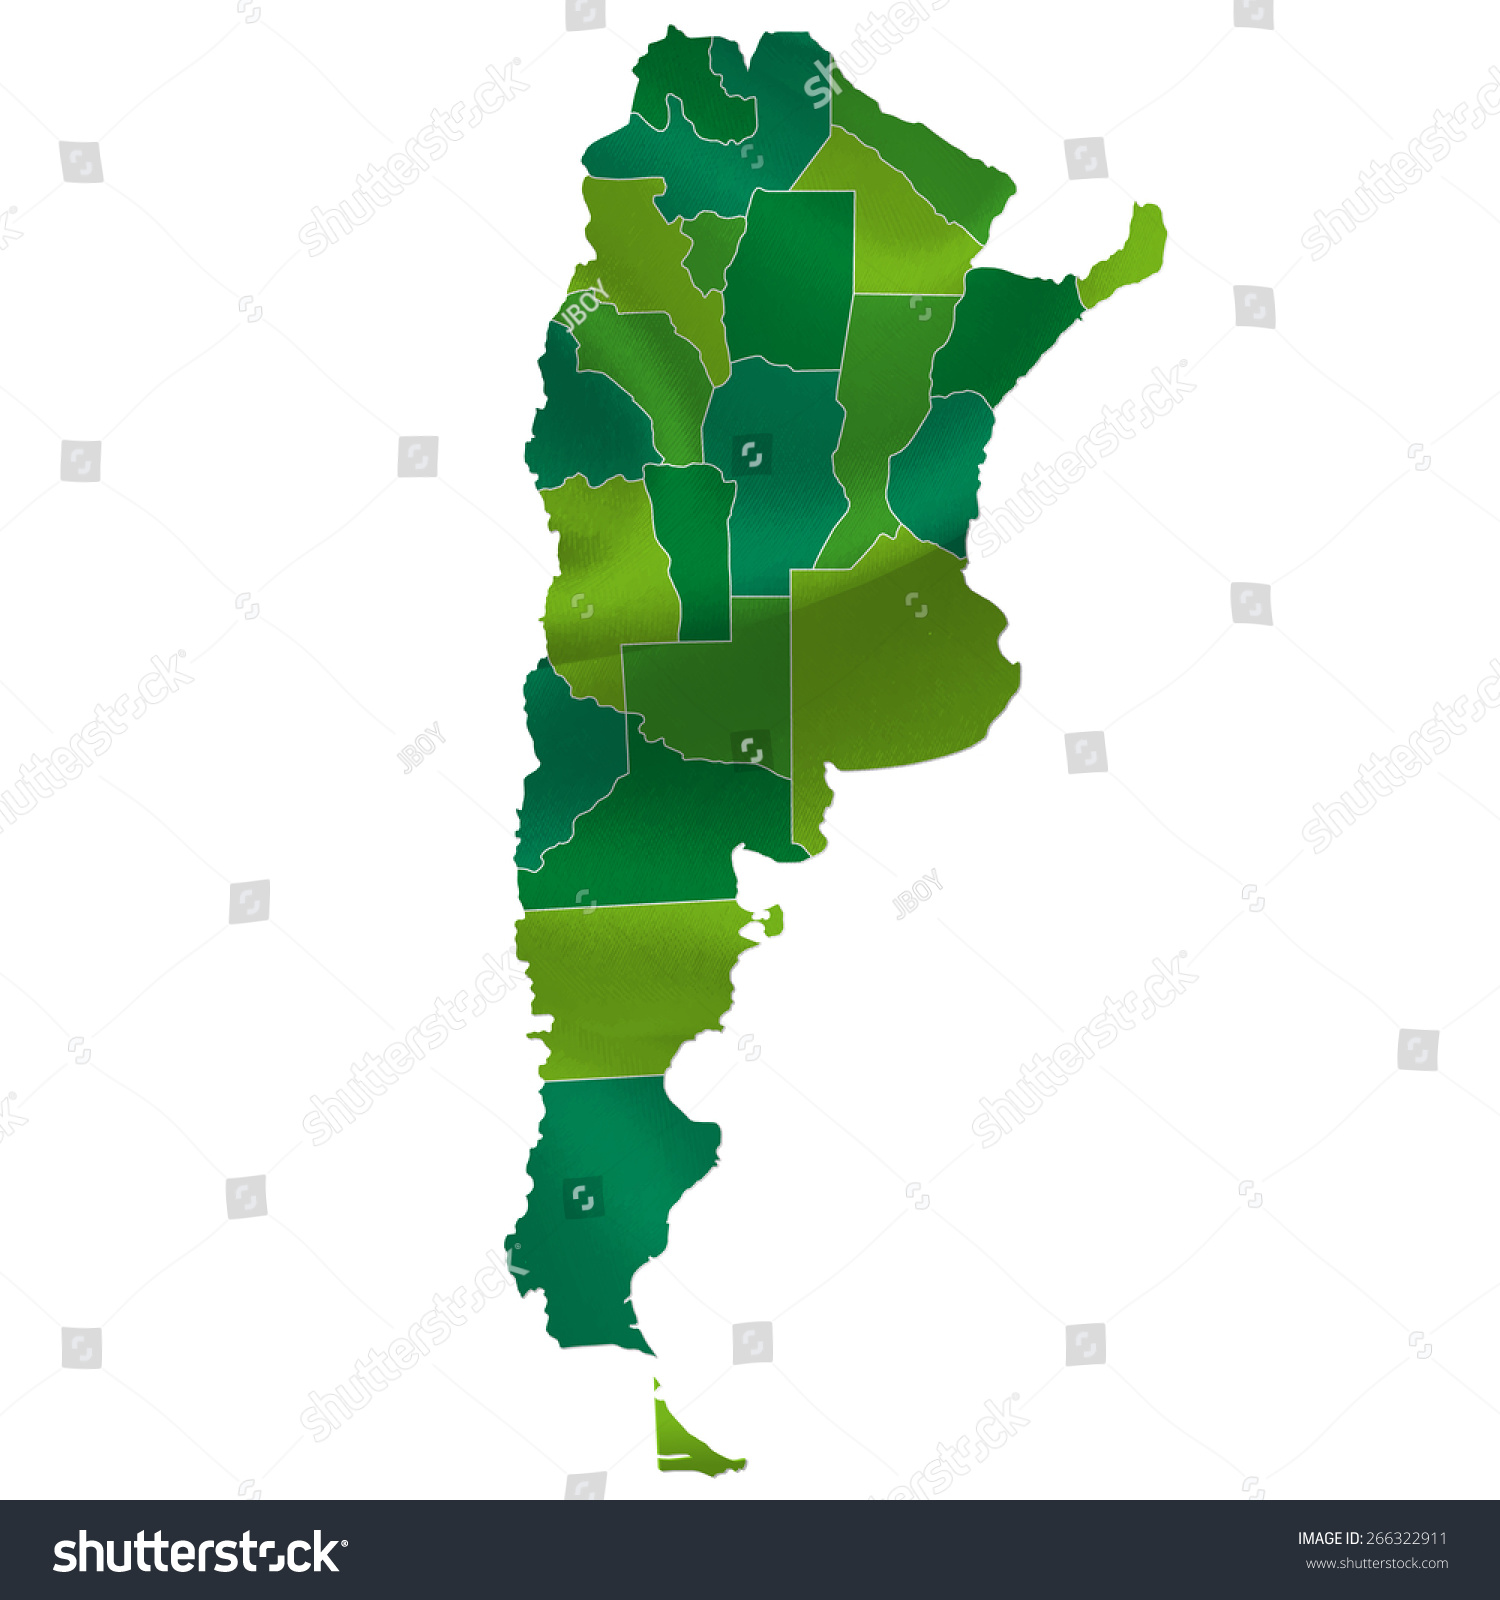 Argentina Map Country Stock Vector Shutterstock - Argentina map of country